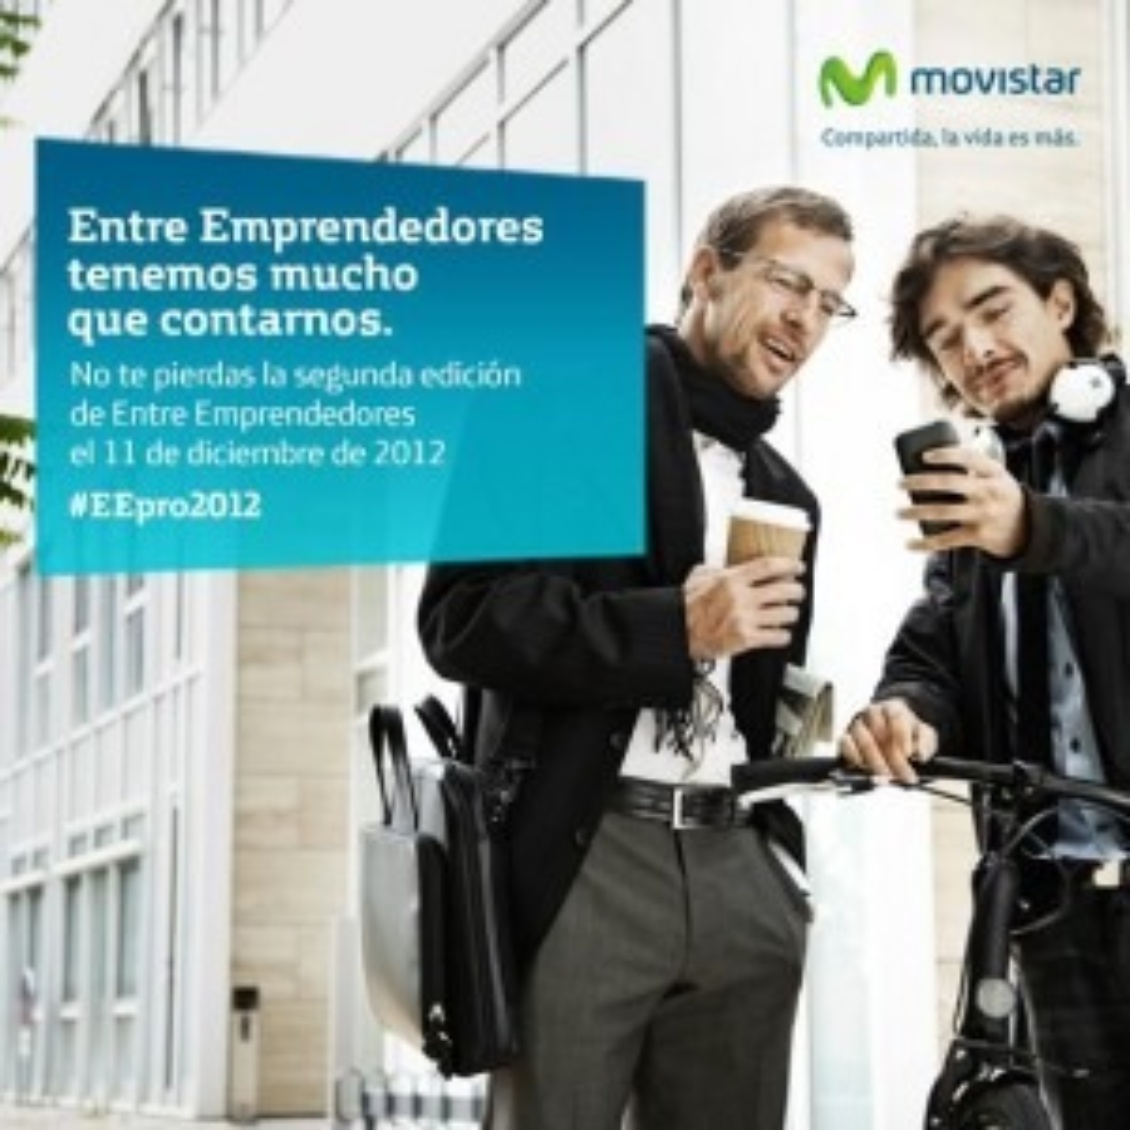 Movistar_EntreEmprendedores-